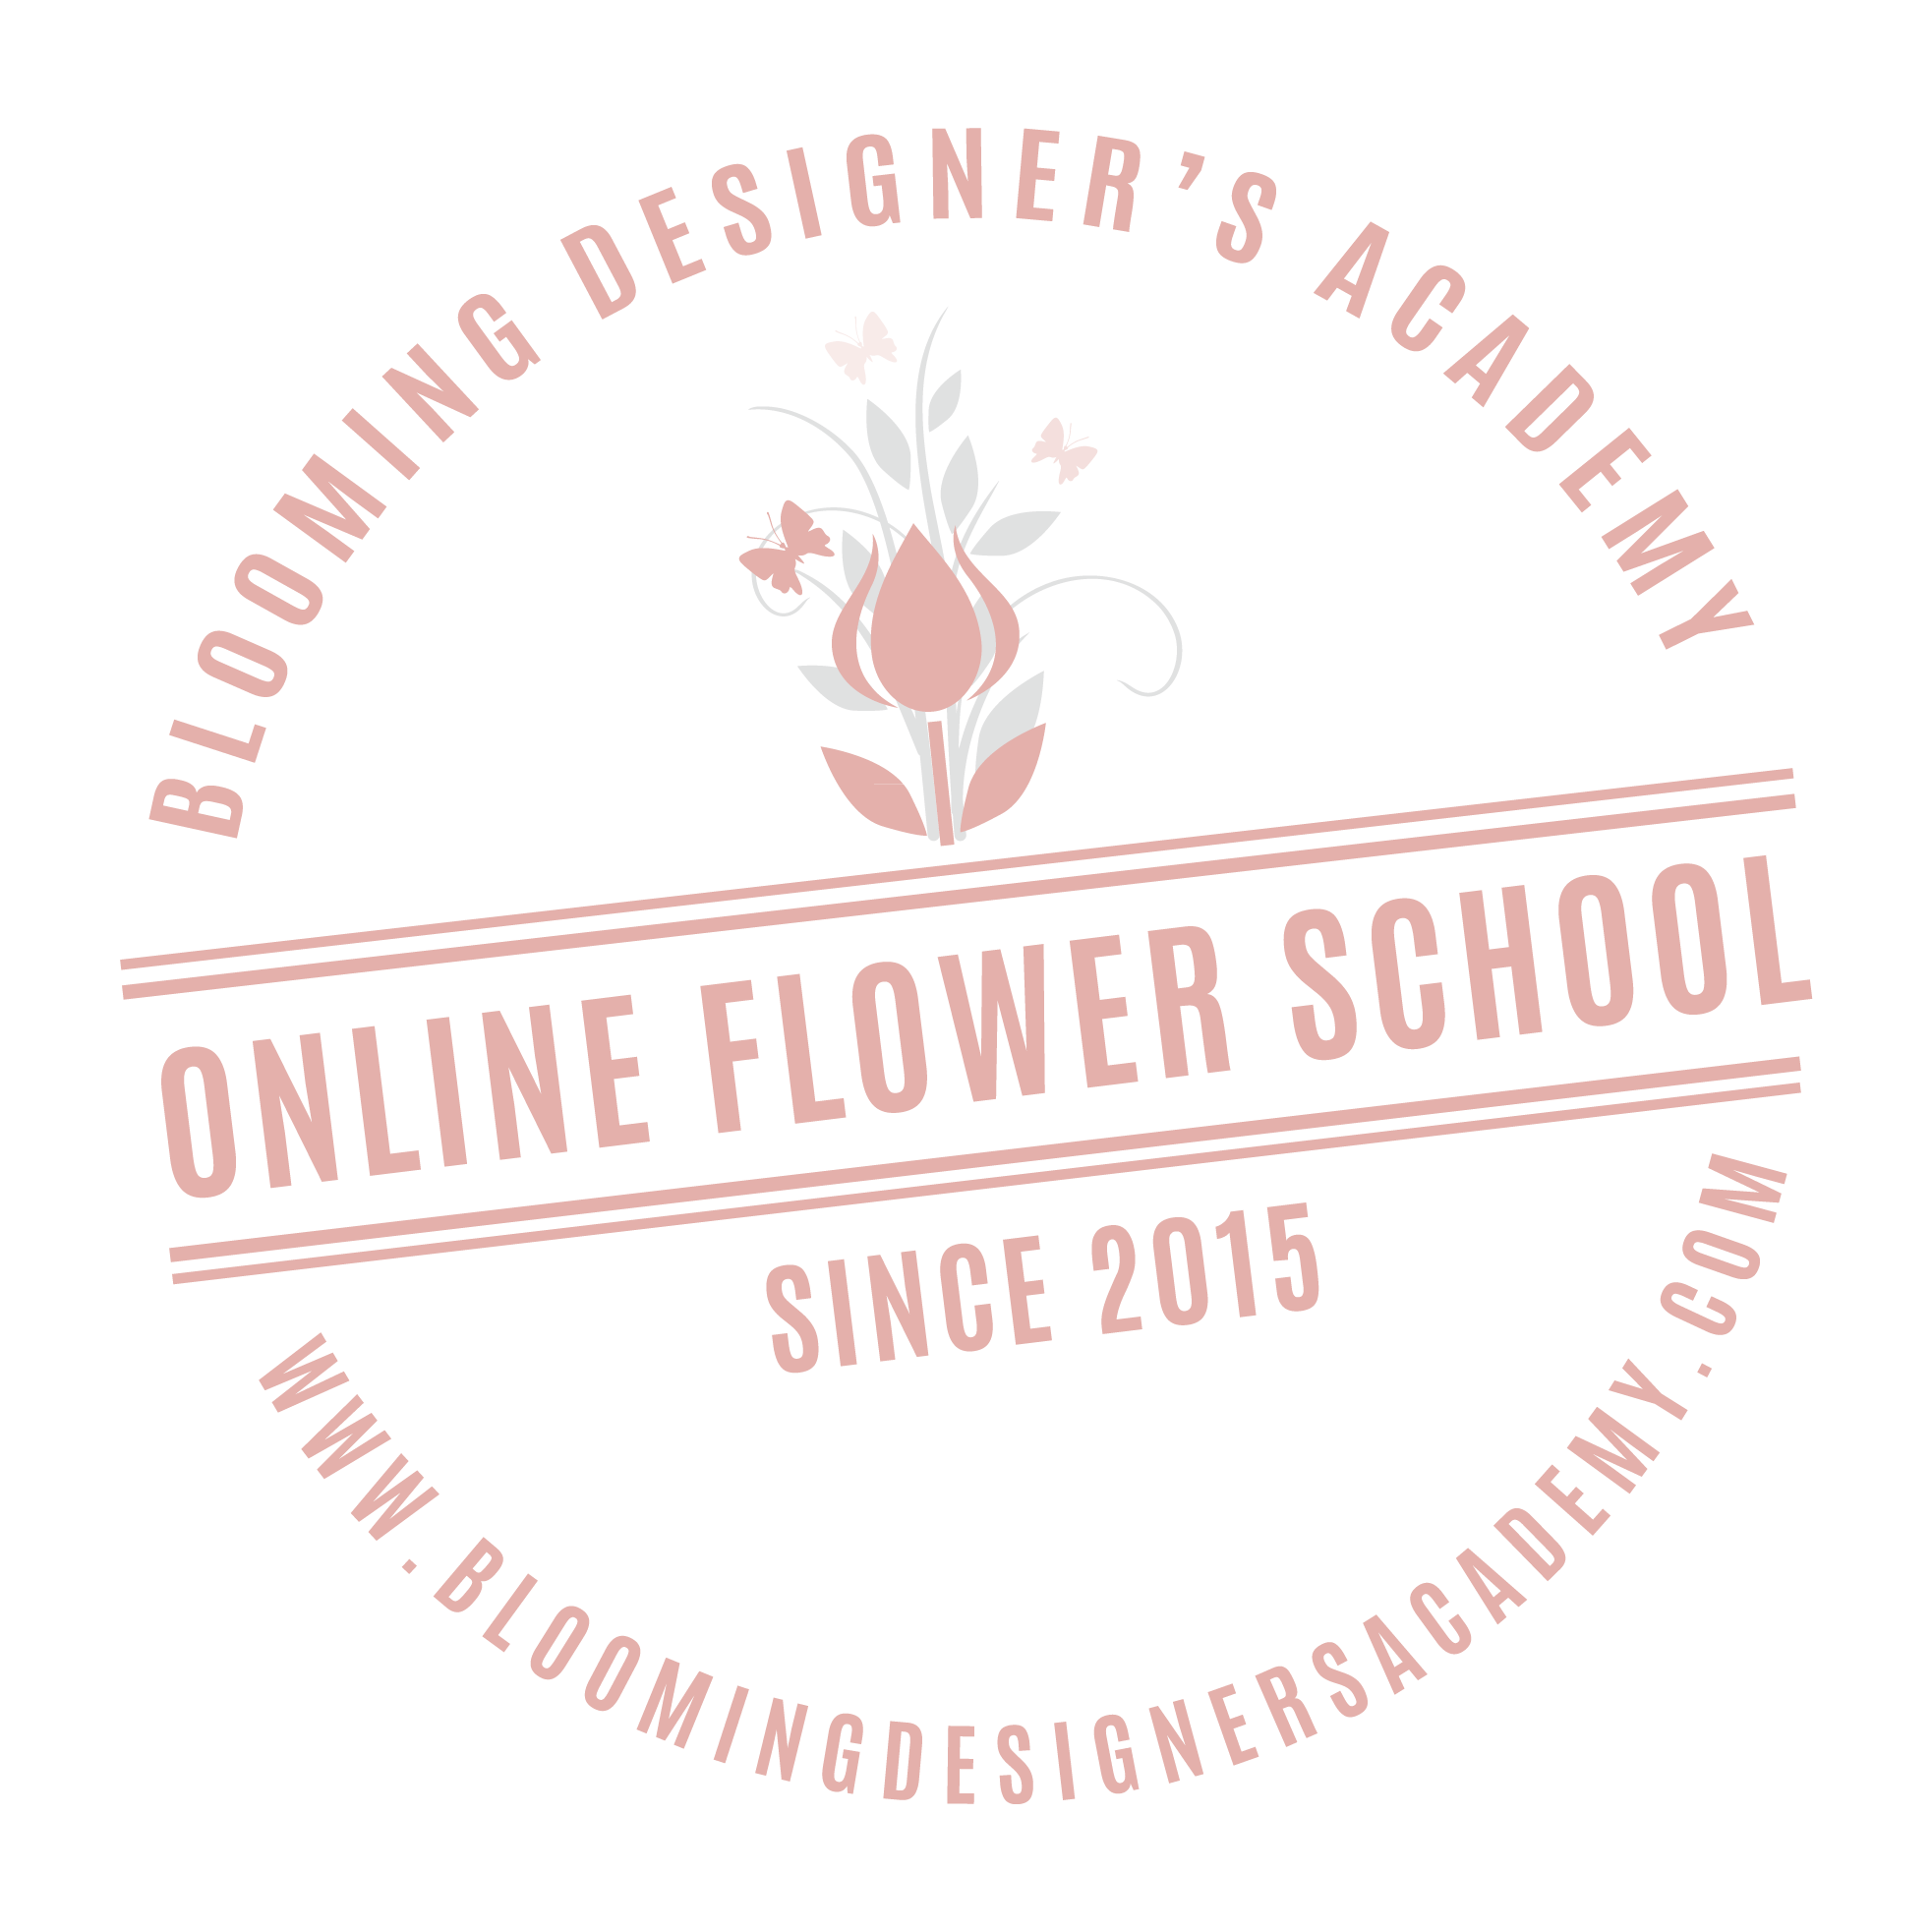 Blooming Designer